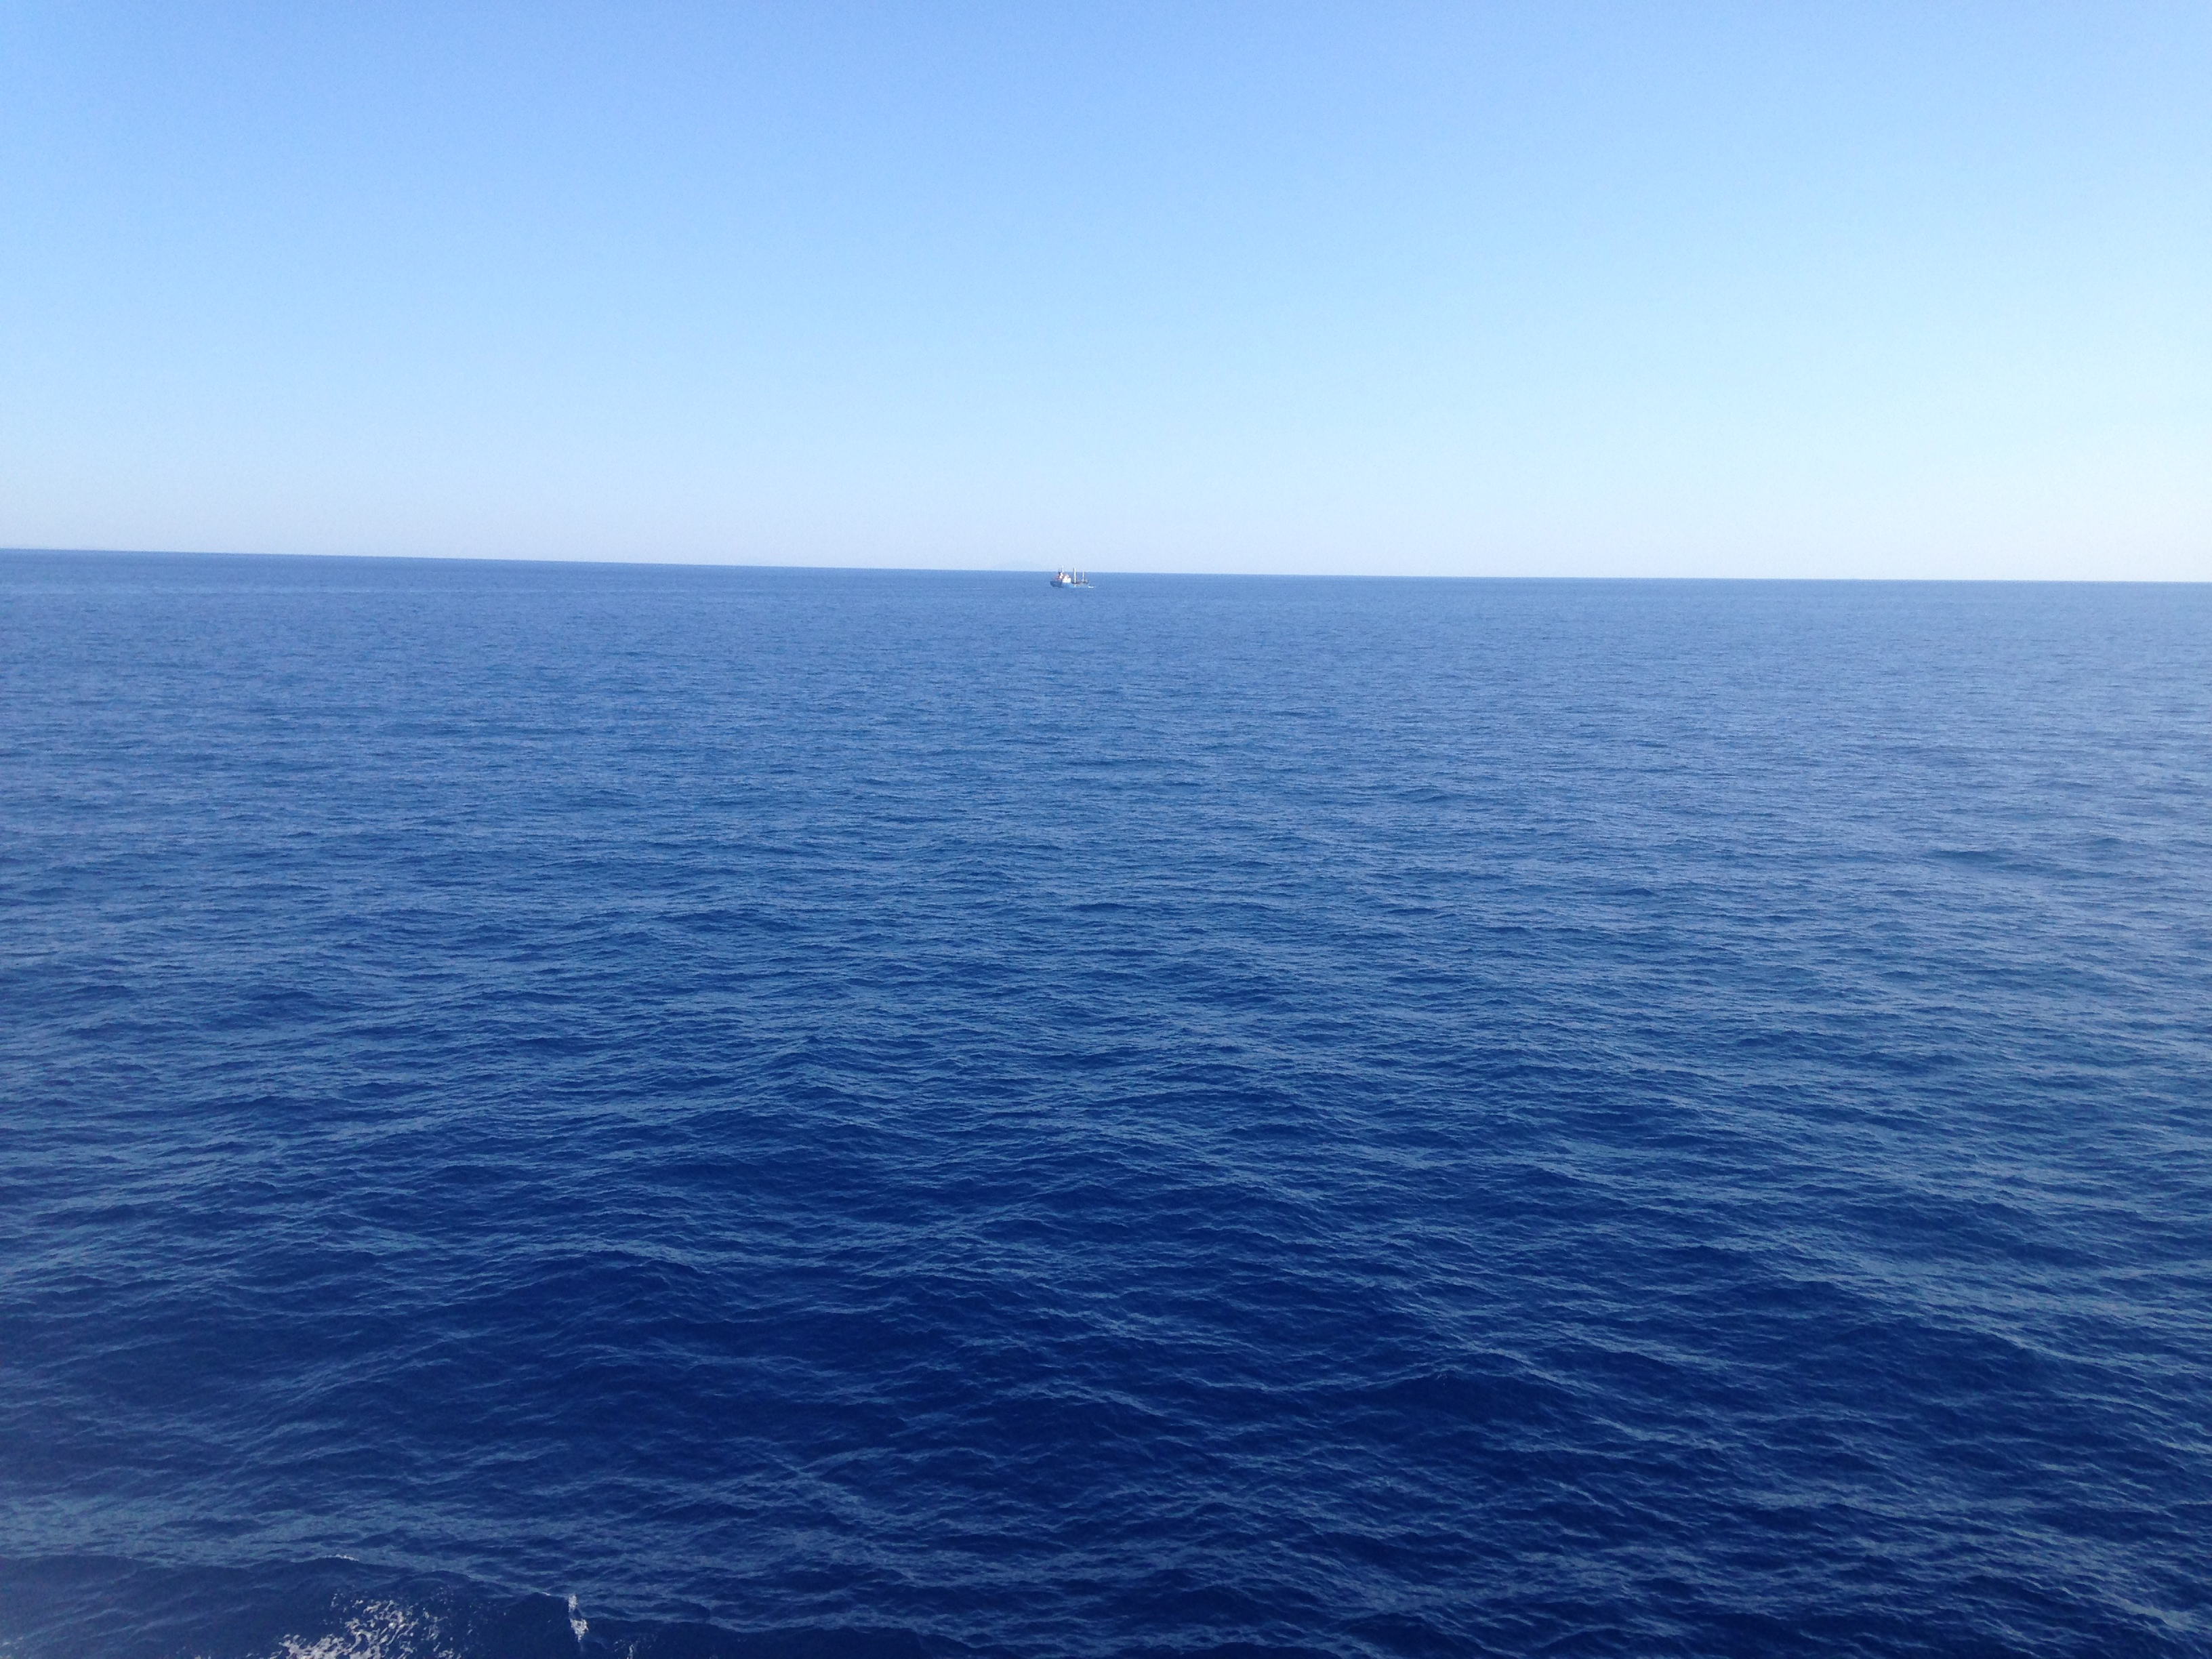 Staring at the sea :: Balkan Fellowship for Journalistic Excellence